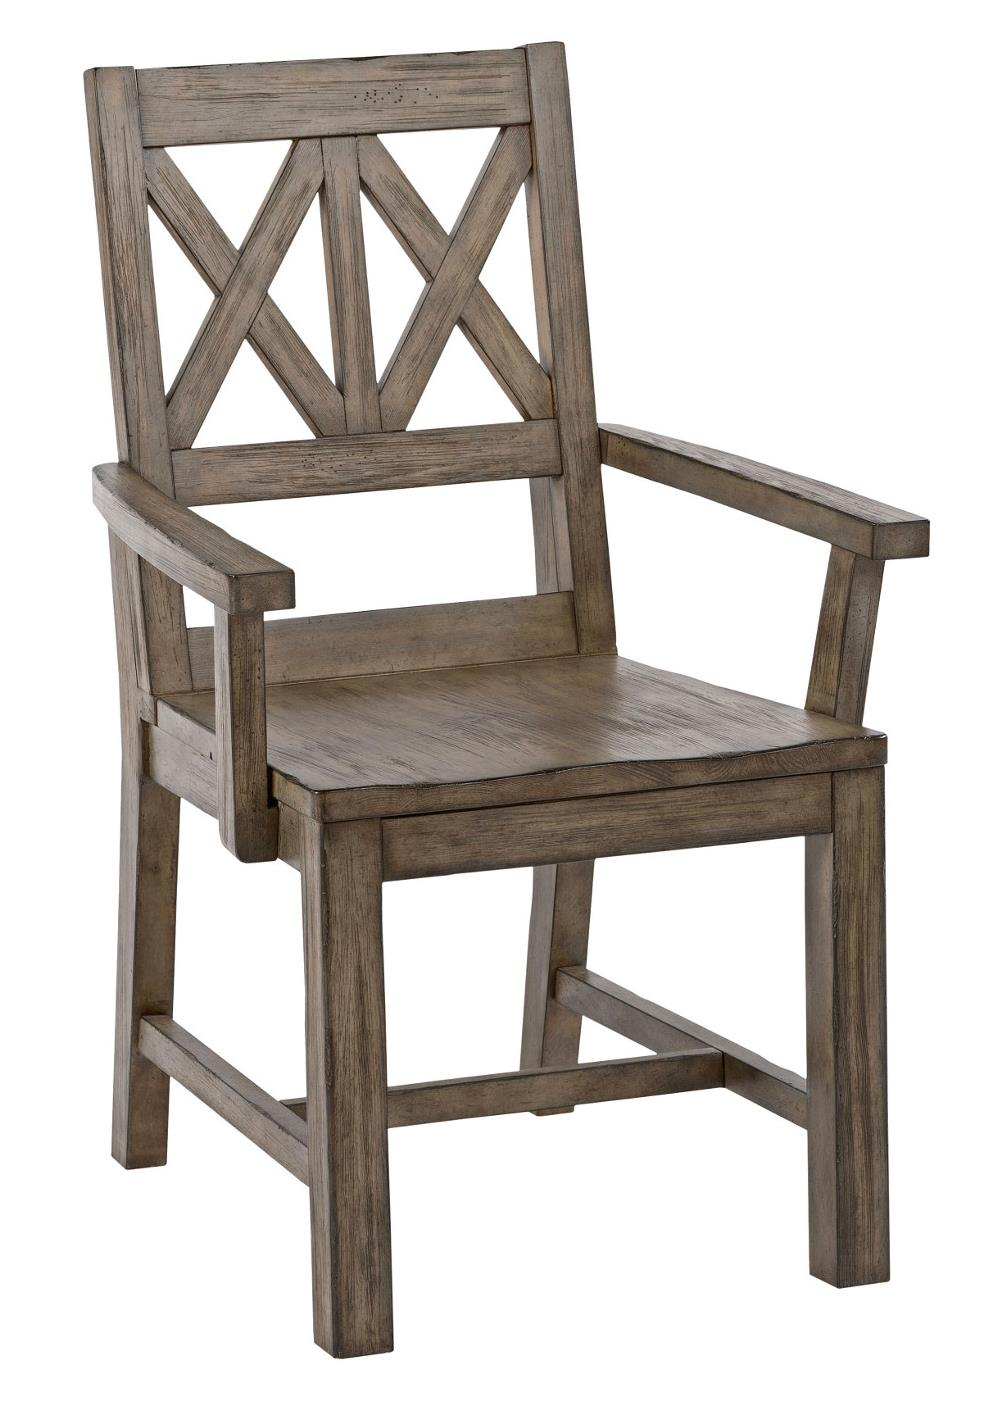 Rustic Solid Wood Arm Chair With Weathered Gray Finish And X Lattice